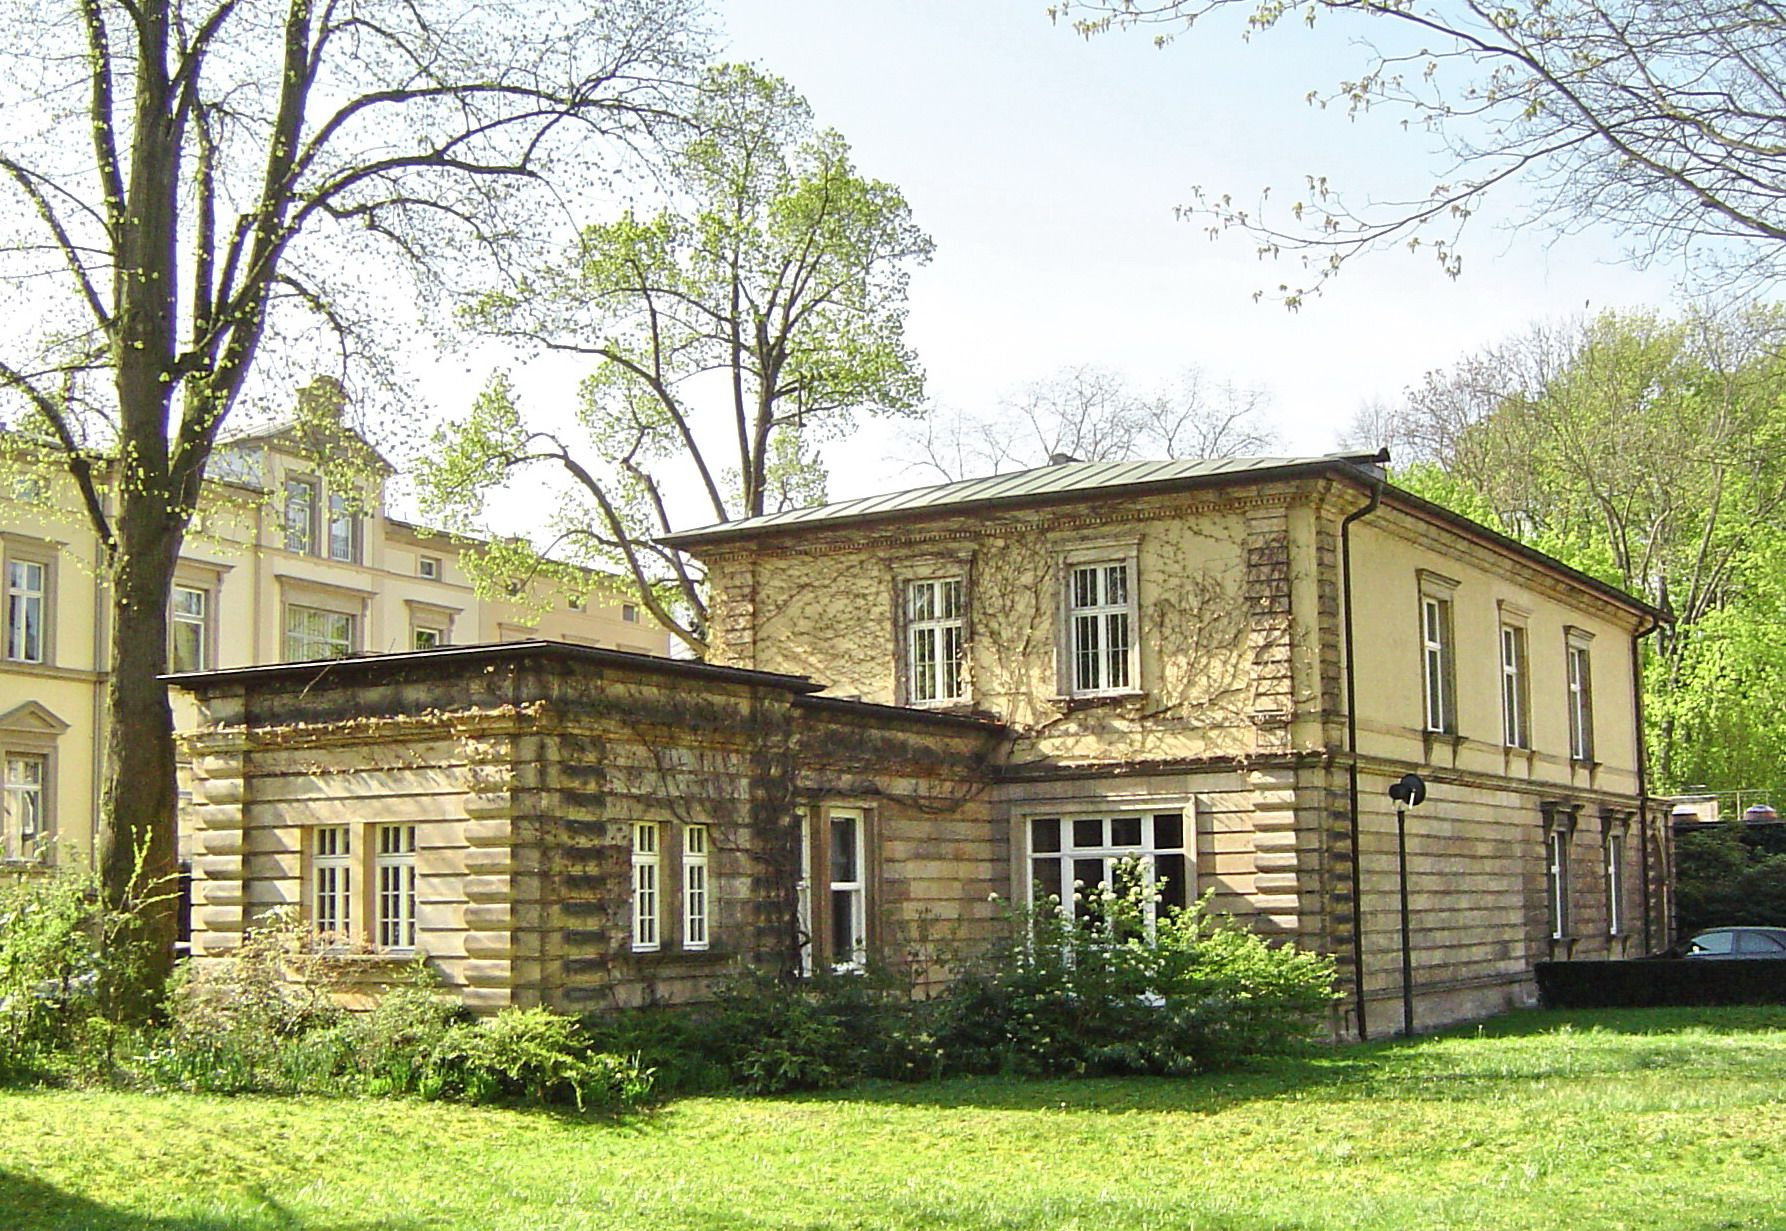 villa wahnfried bayreuth Google Search House styles